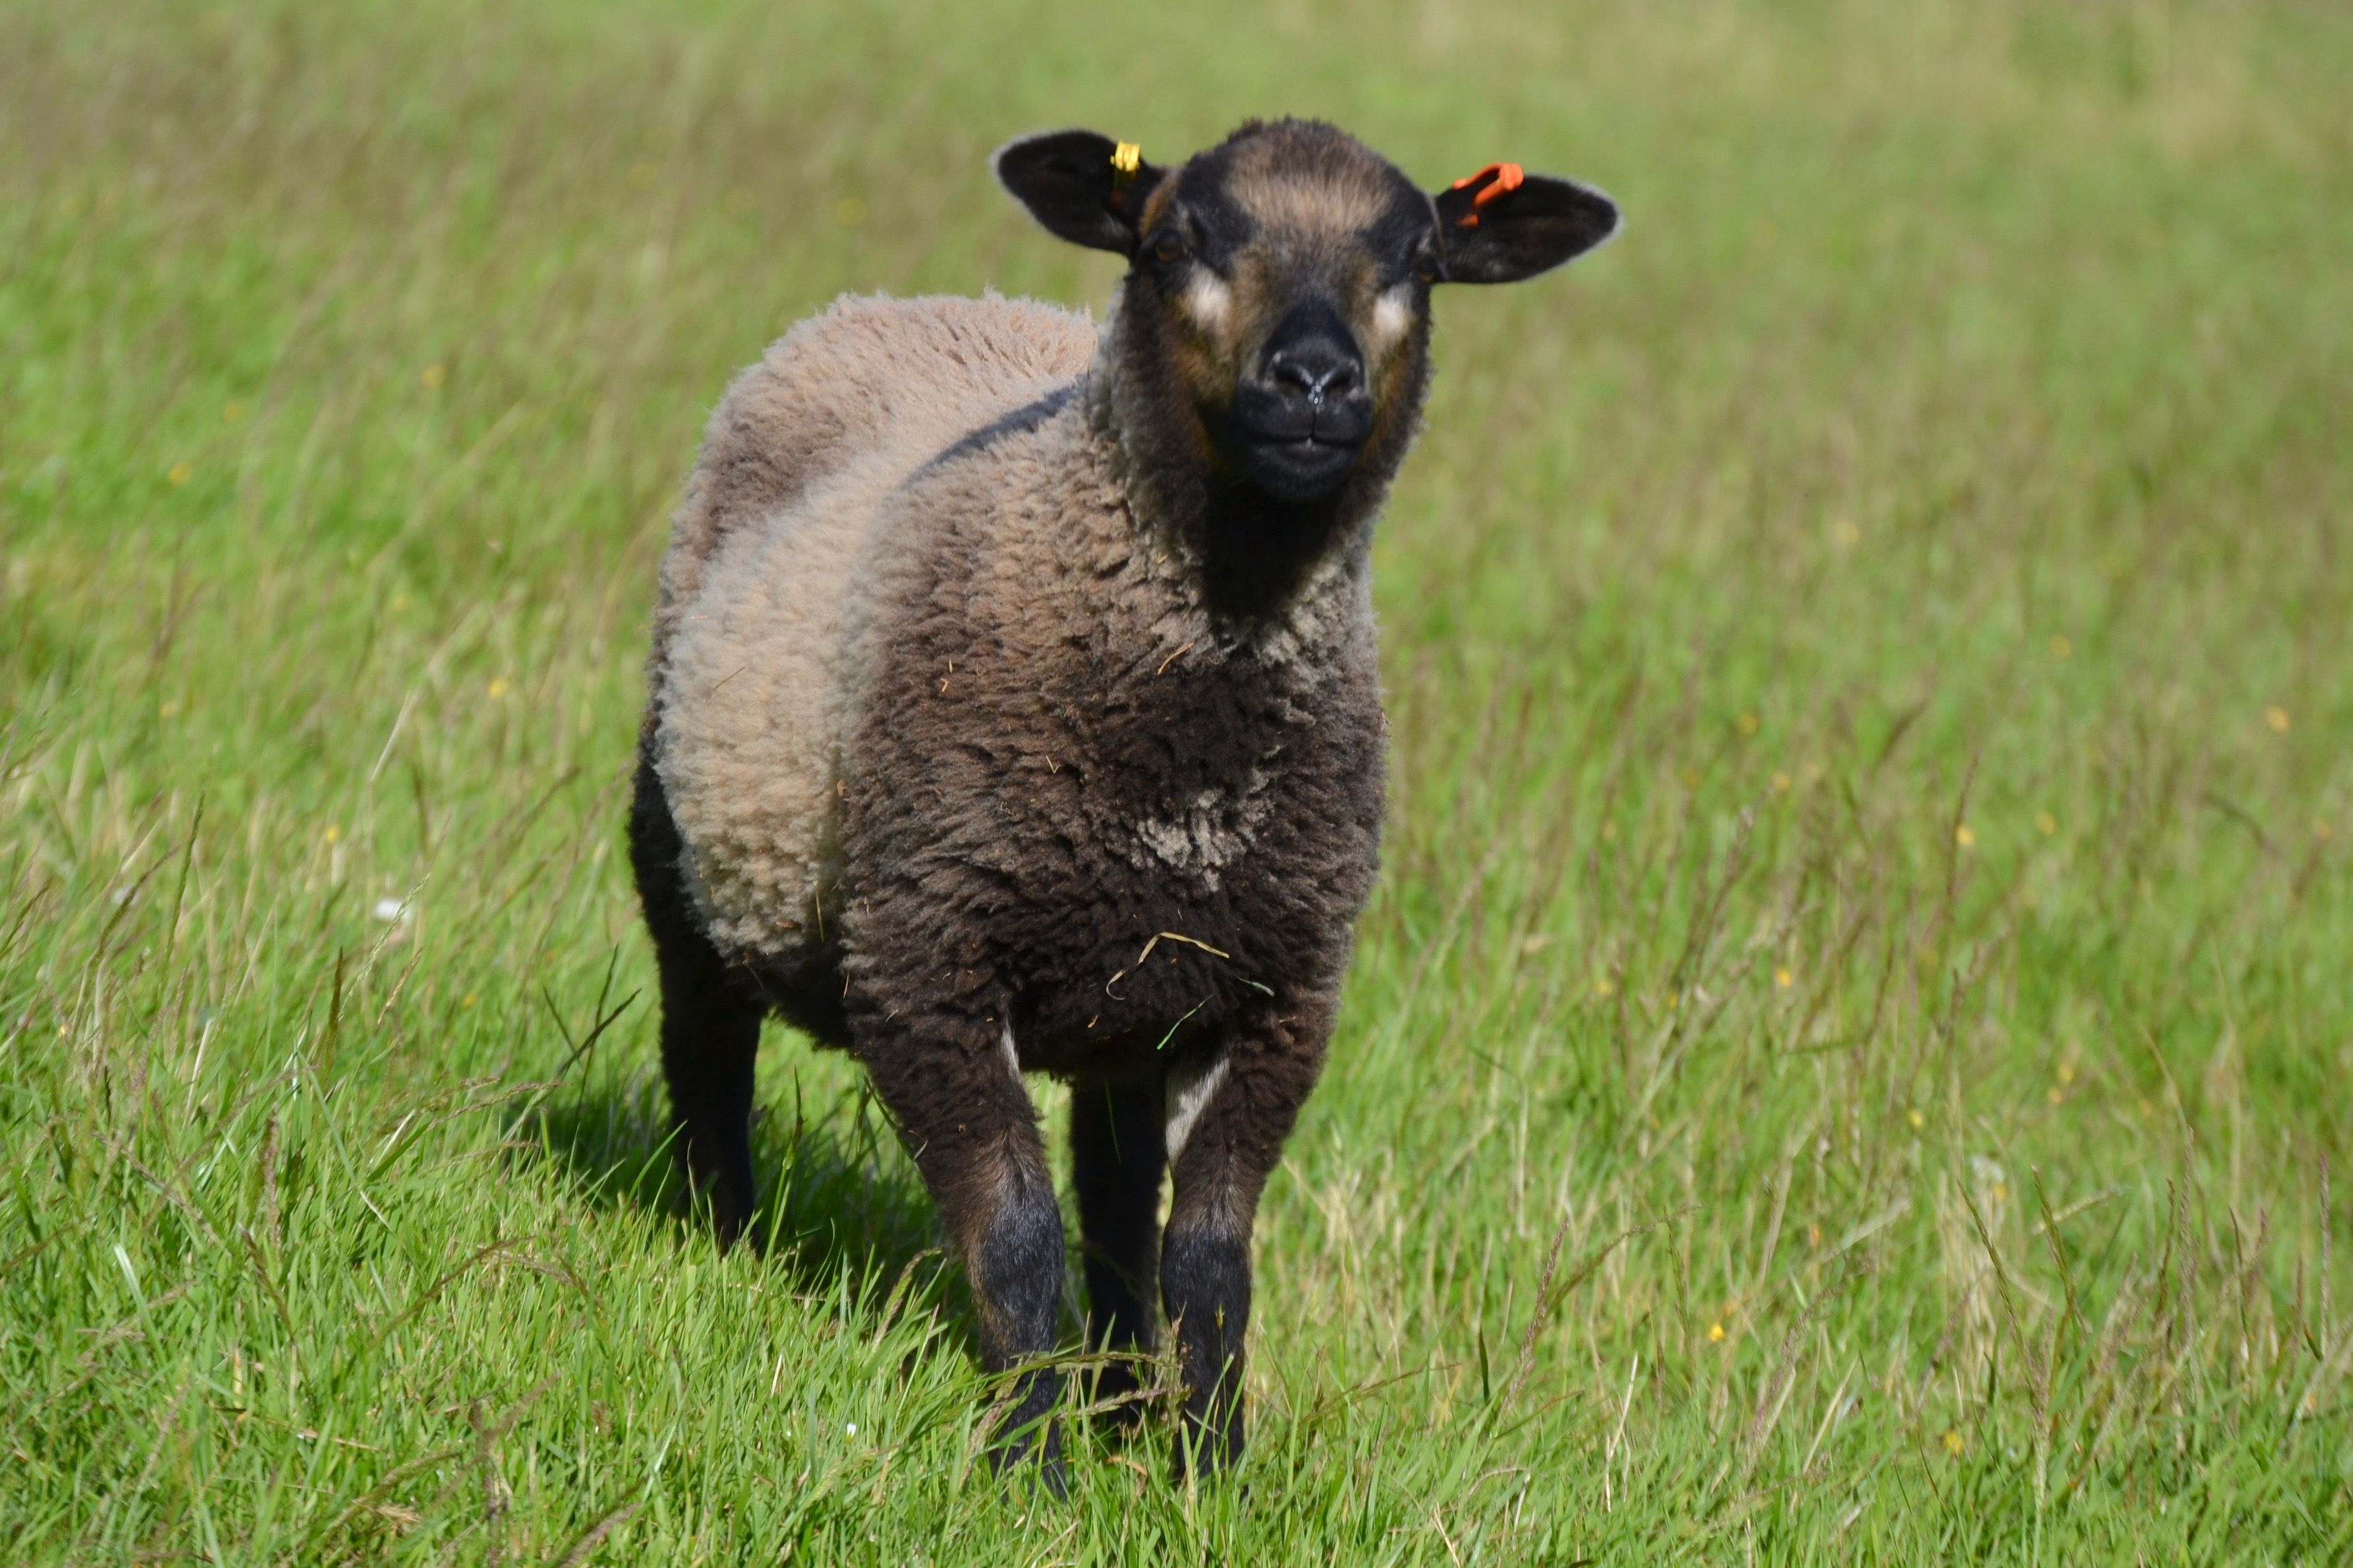 Hardicott Pedigree Shetlands, Shearling Ewes and Rams and Lambs for sale.